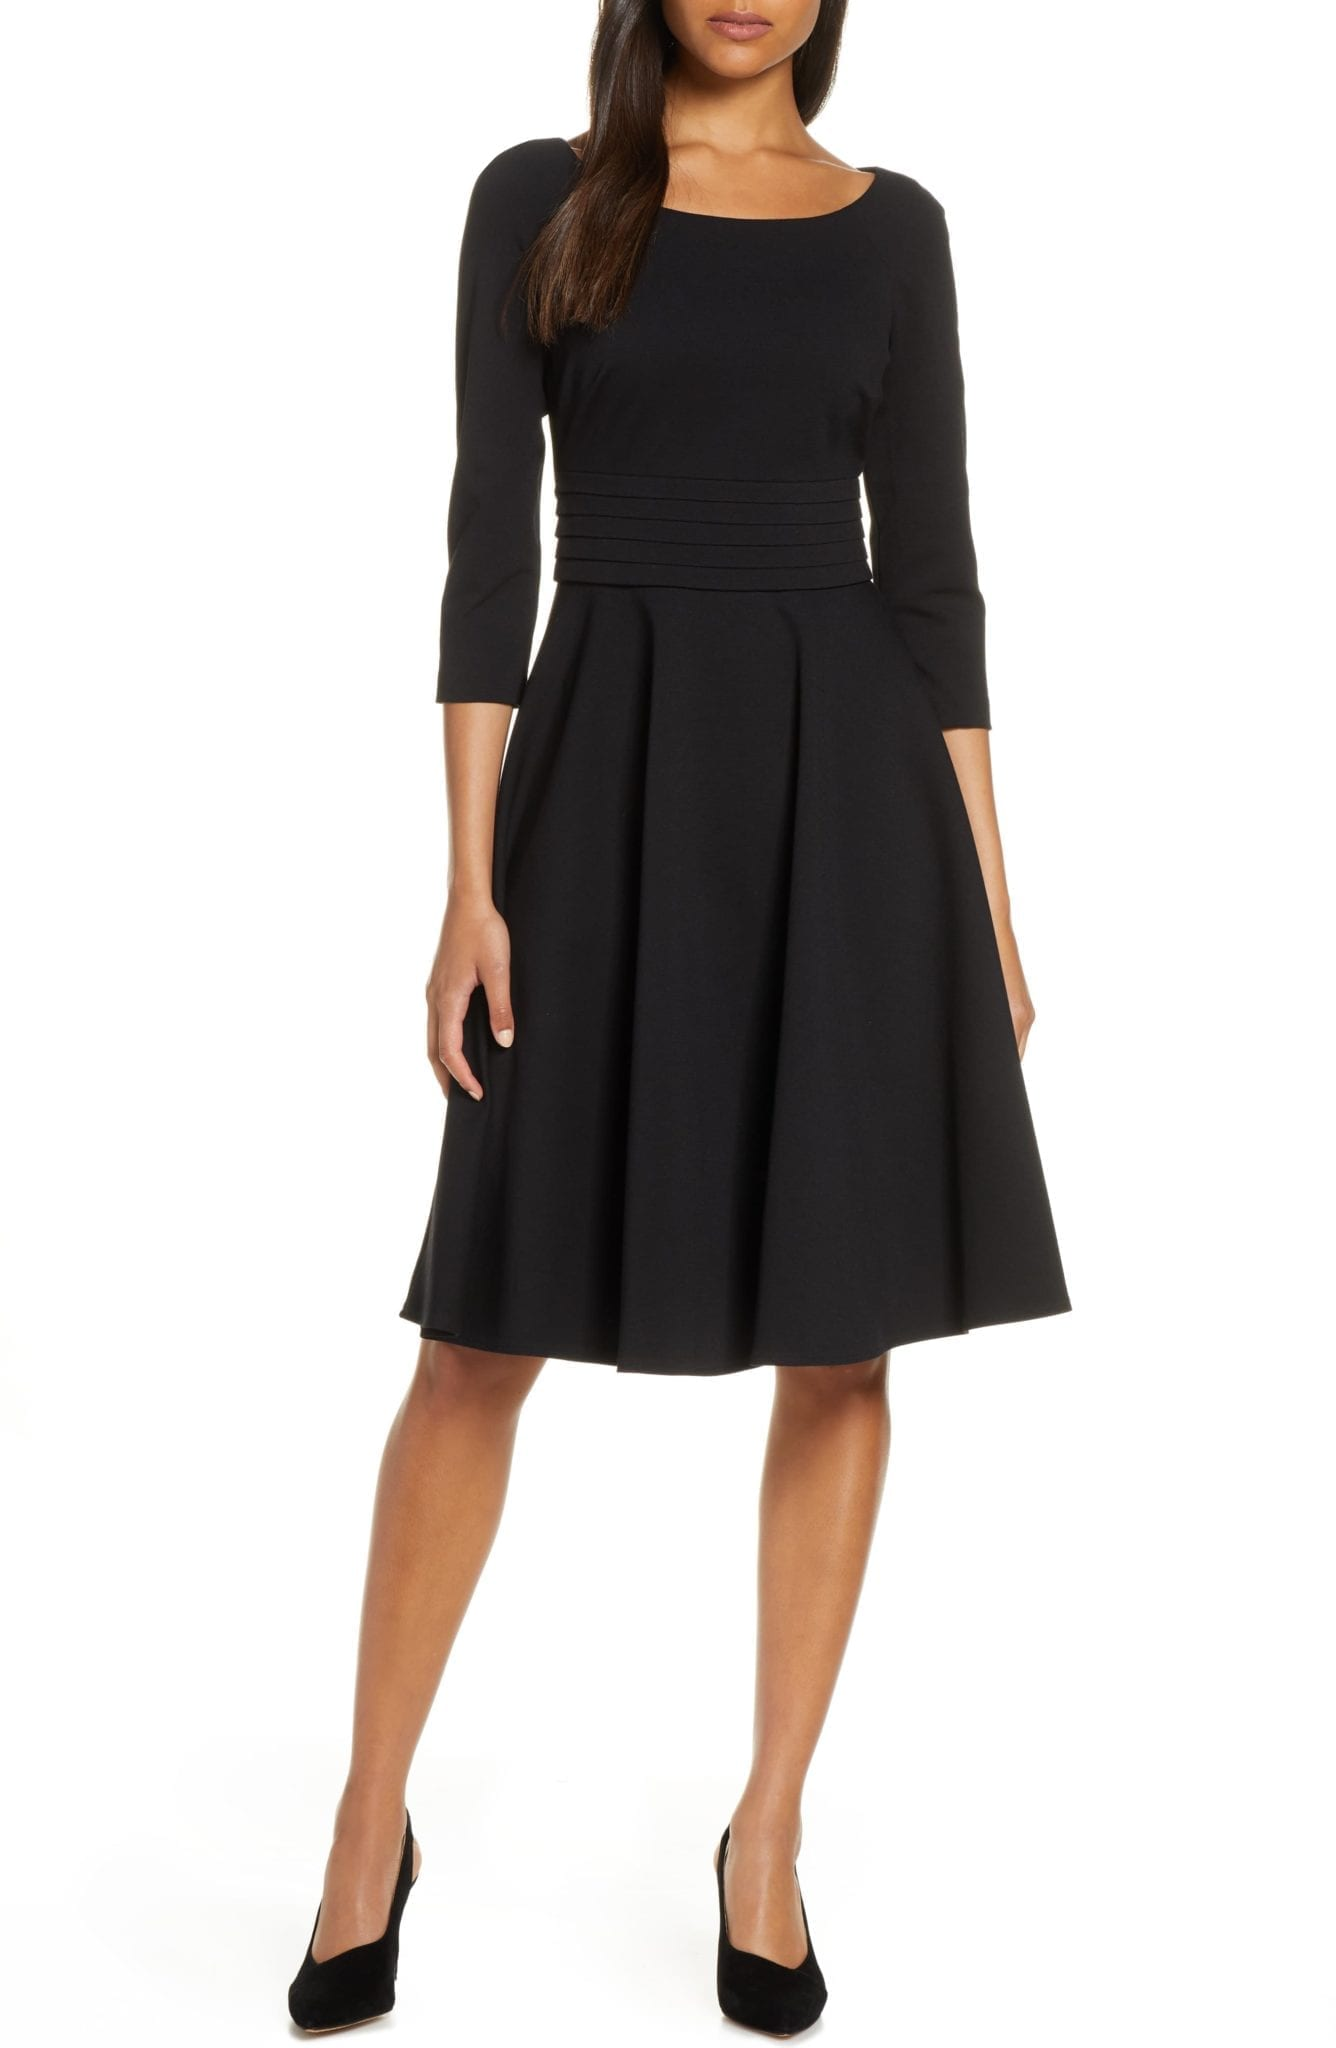 HARPER ROSE Pleated Fit & Flare Dress